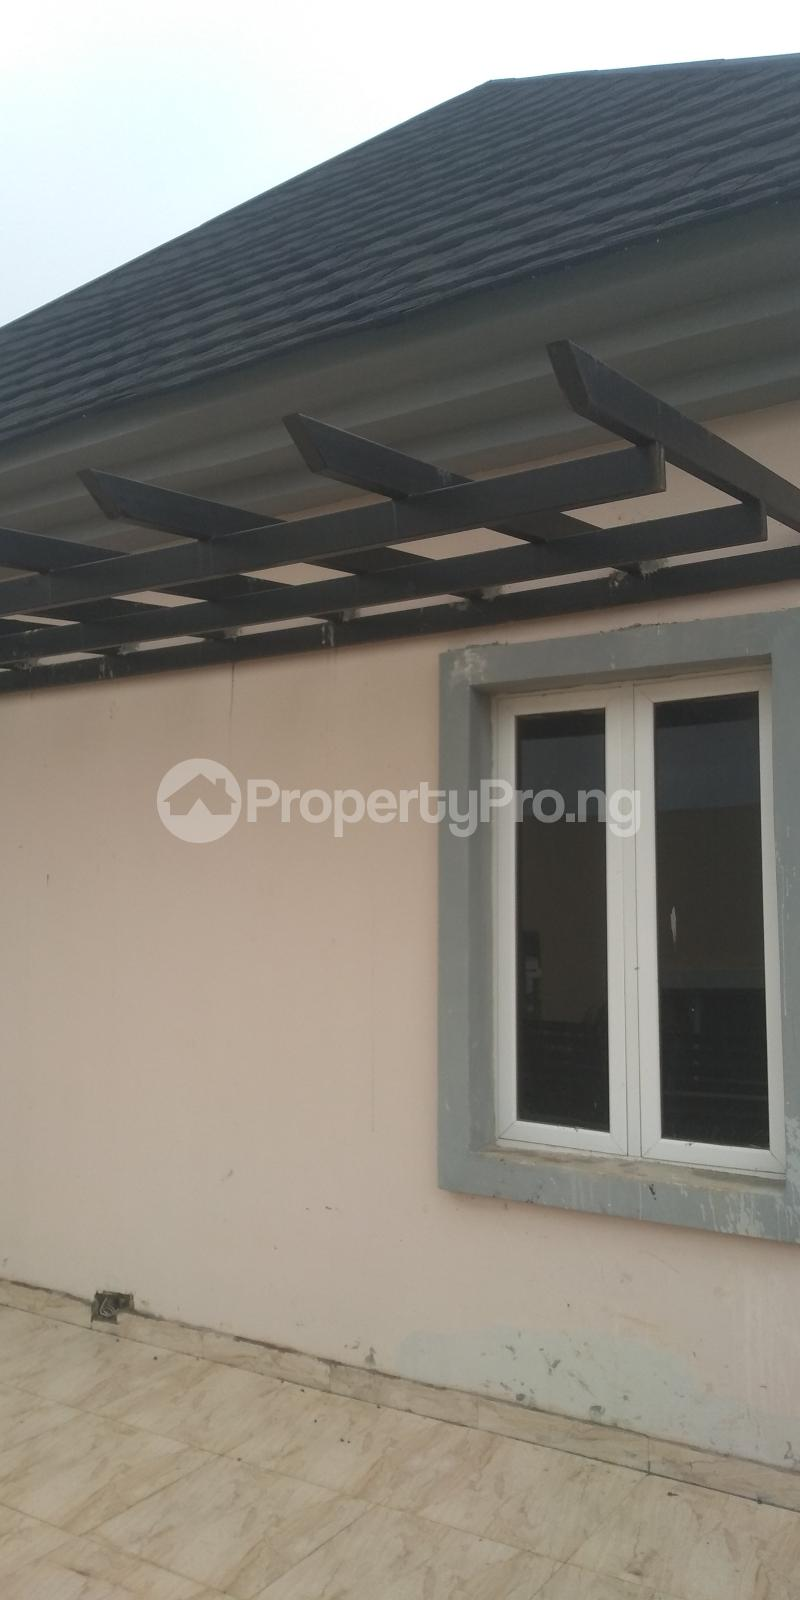 5 bedroom Flat / Apartment for sale Life Camp Abuja - 7